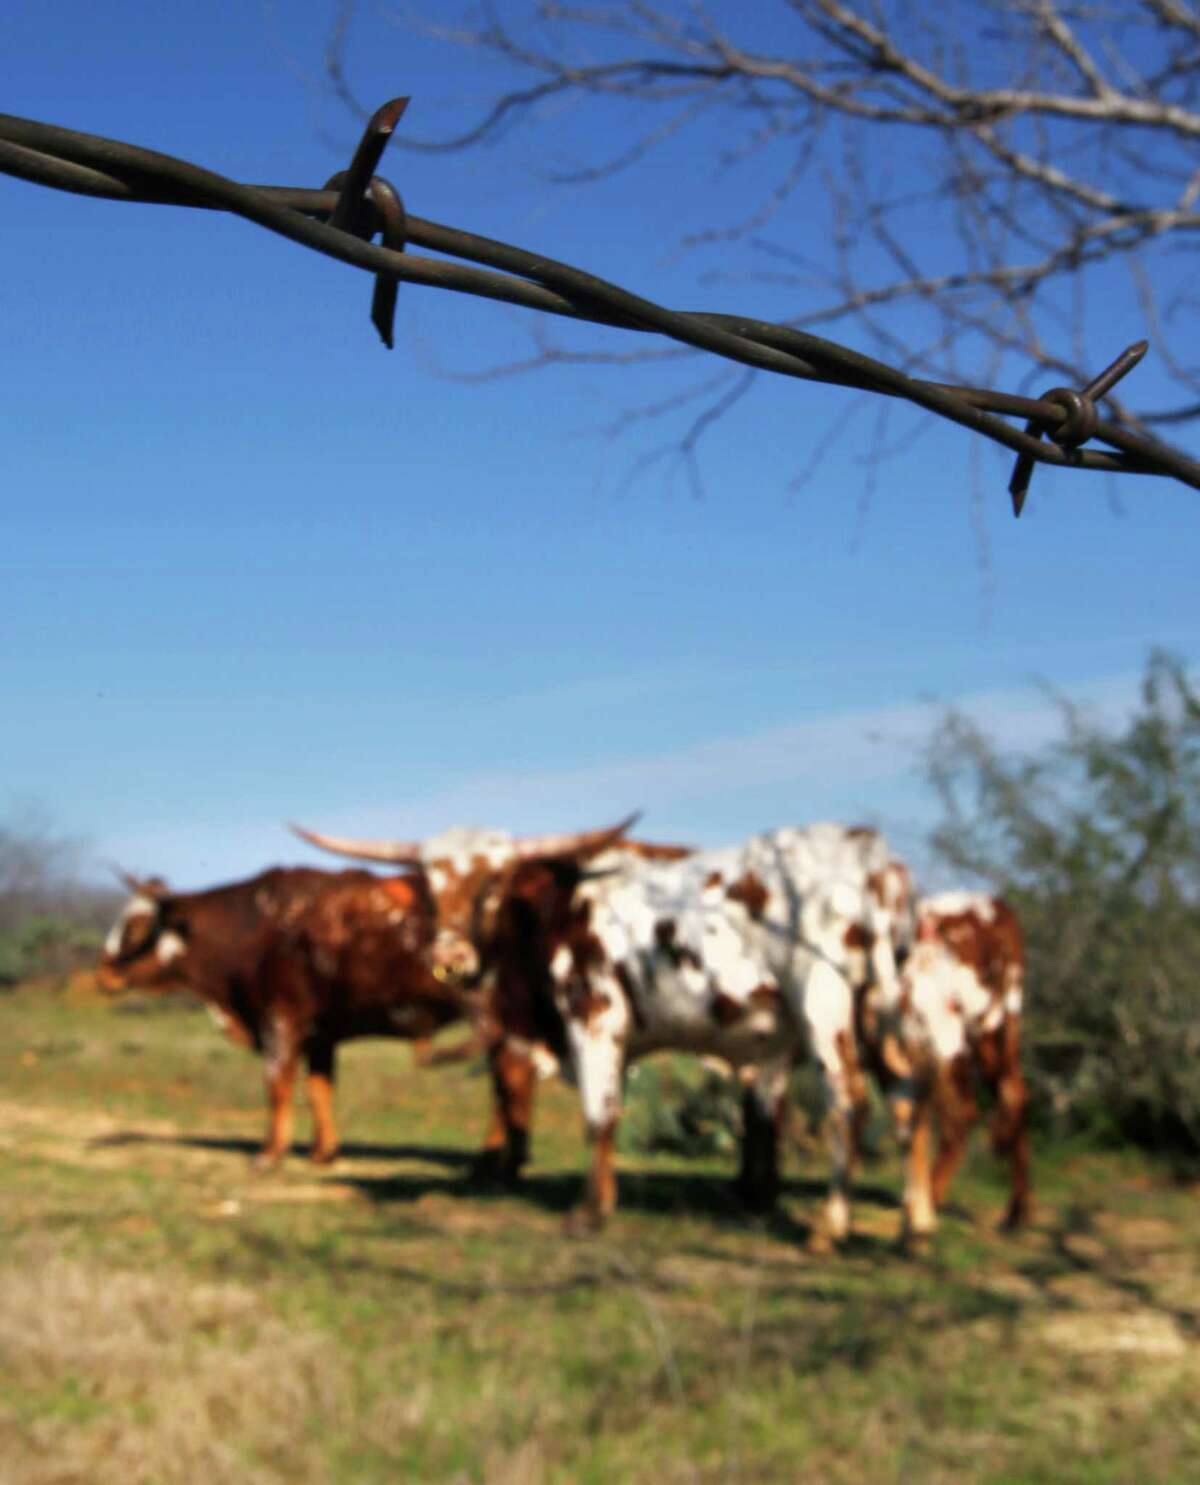 Barbed wire fences surround ranches and pastures across Texas. This one was spotted in south Bexar County.